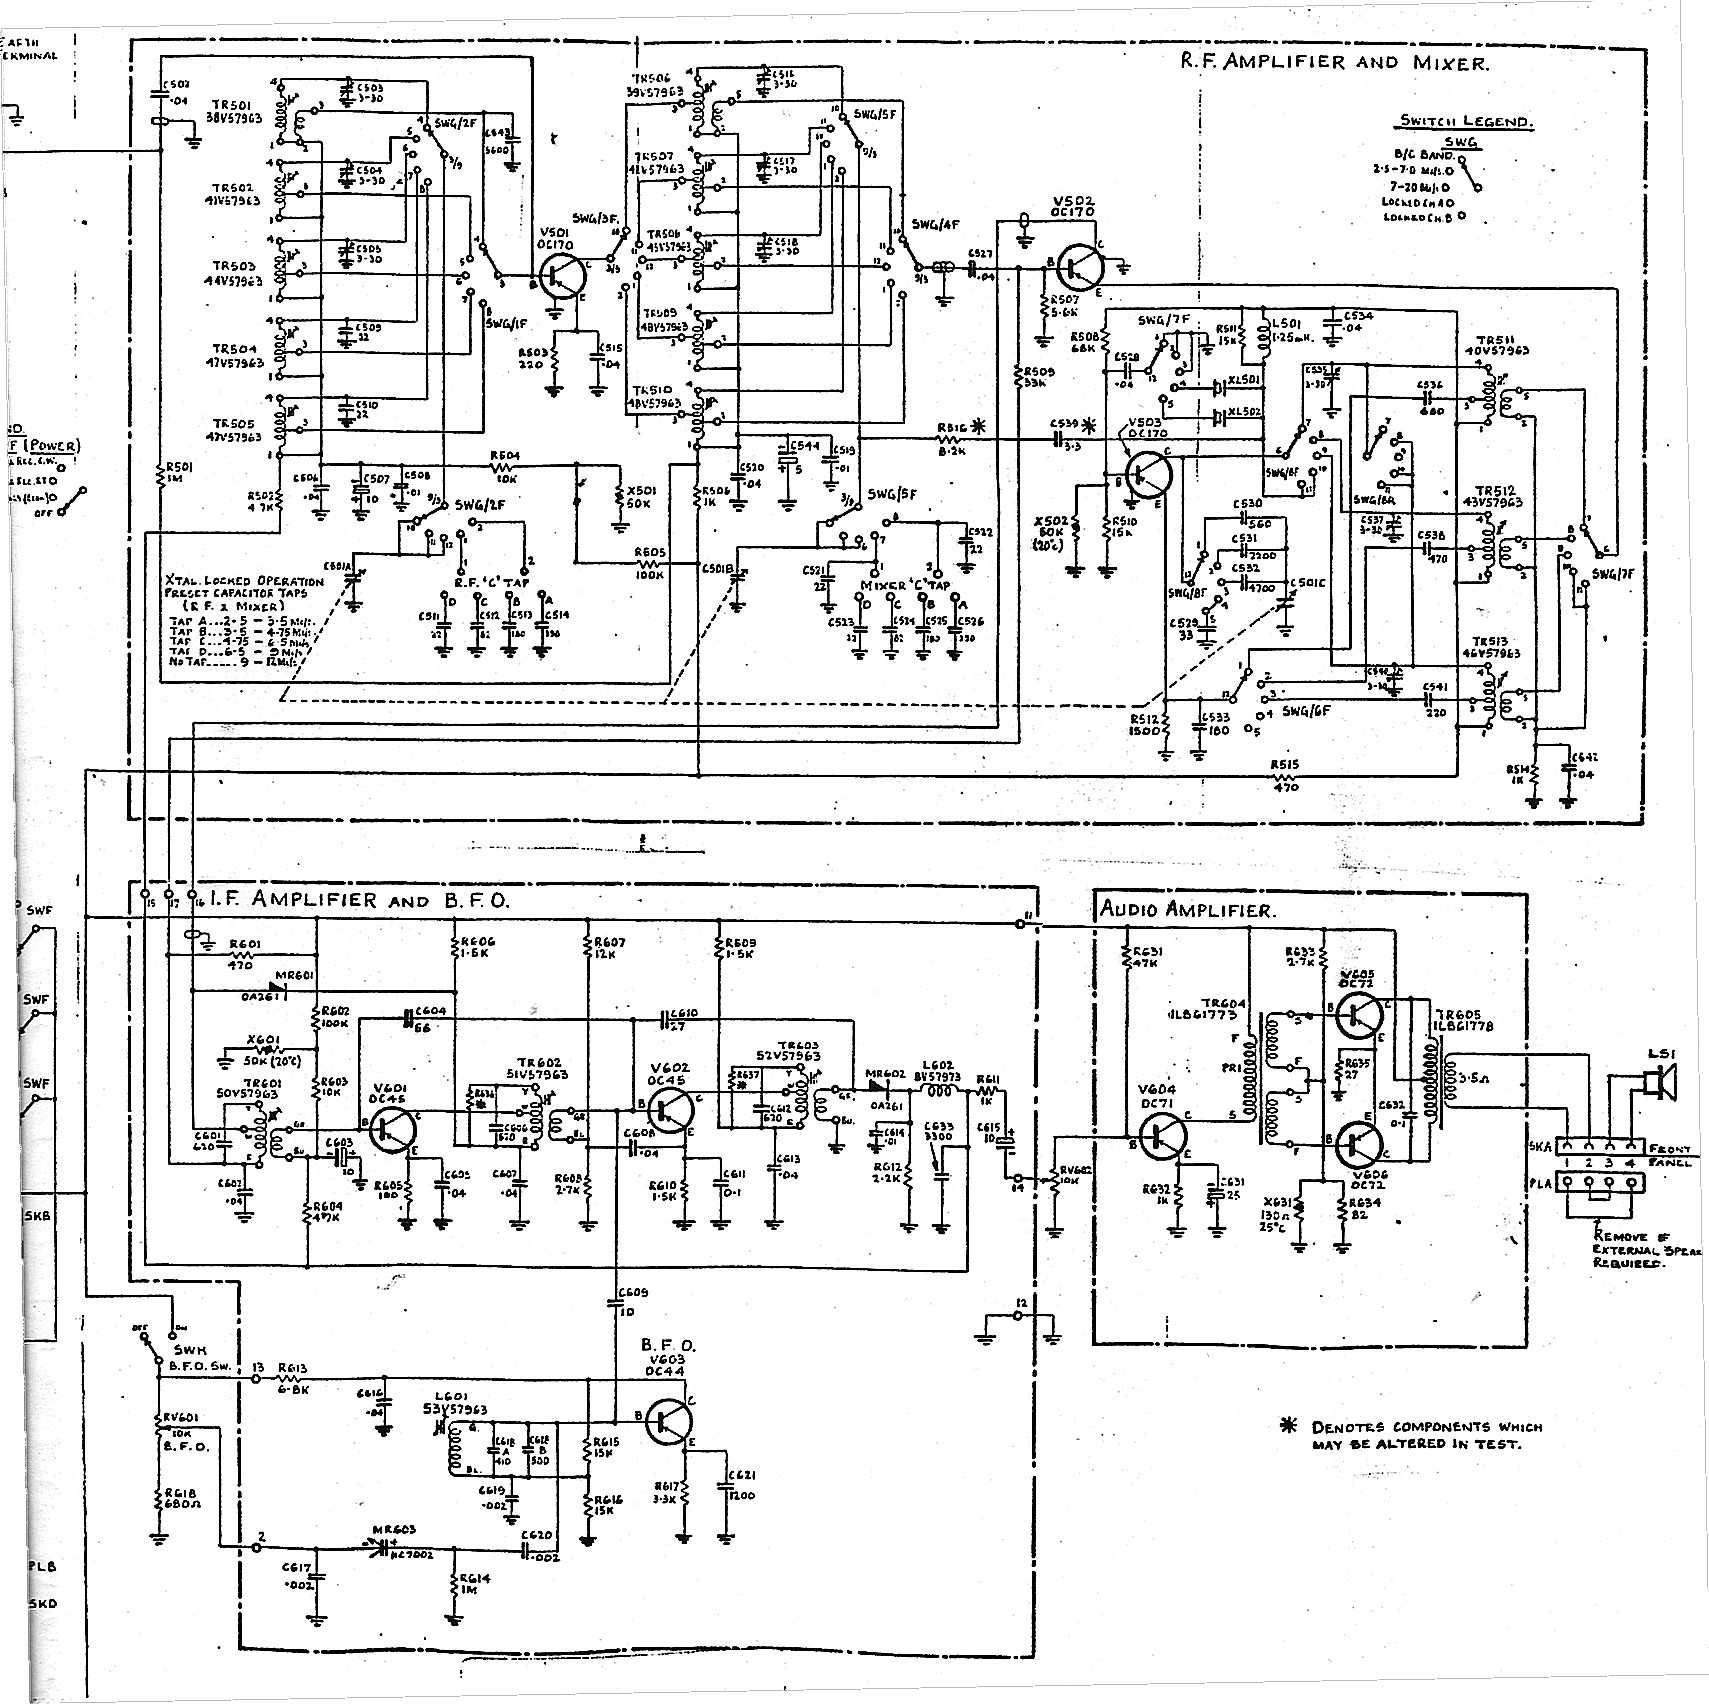 moblile radio at woomera range Cell Phone Receiver Schematic the faithful 2e26 rf power lifier was again used but a more plex aerial loading circuit was included to allow internal presetting of the matching